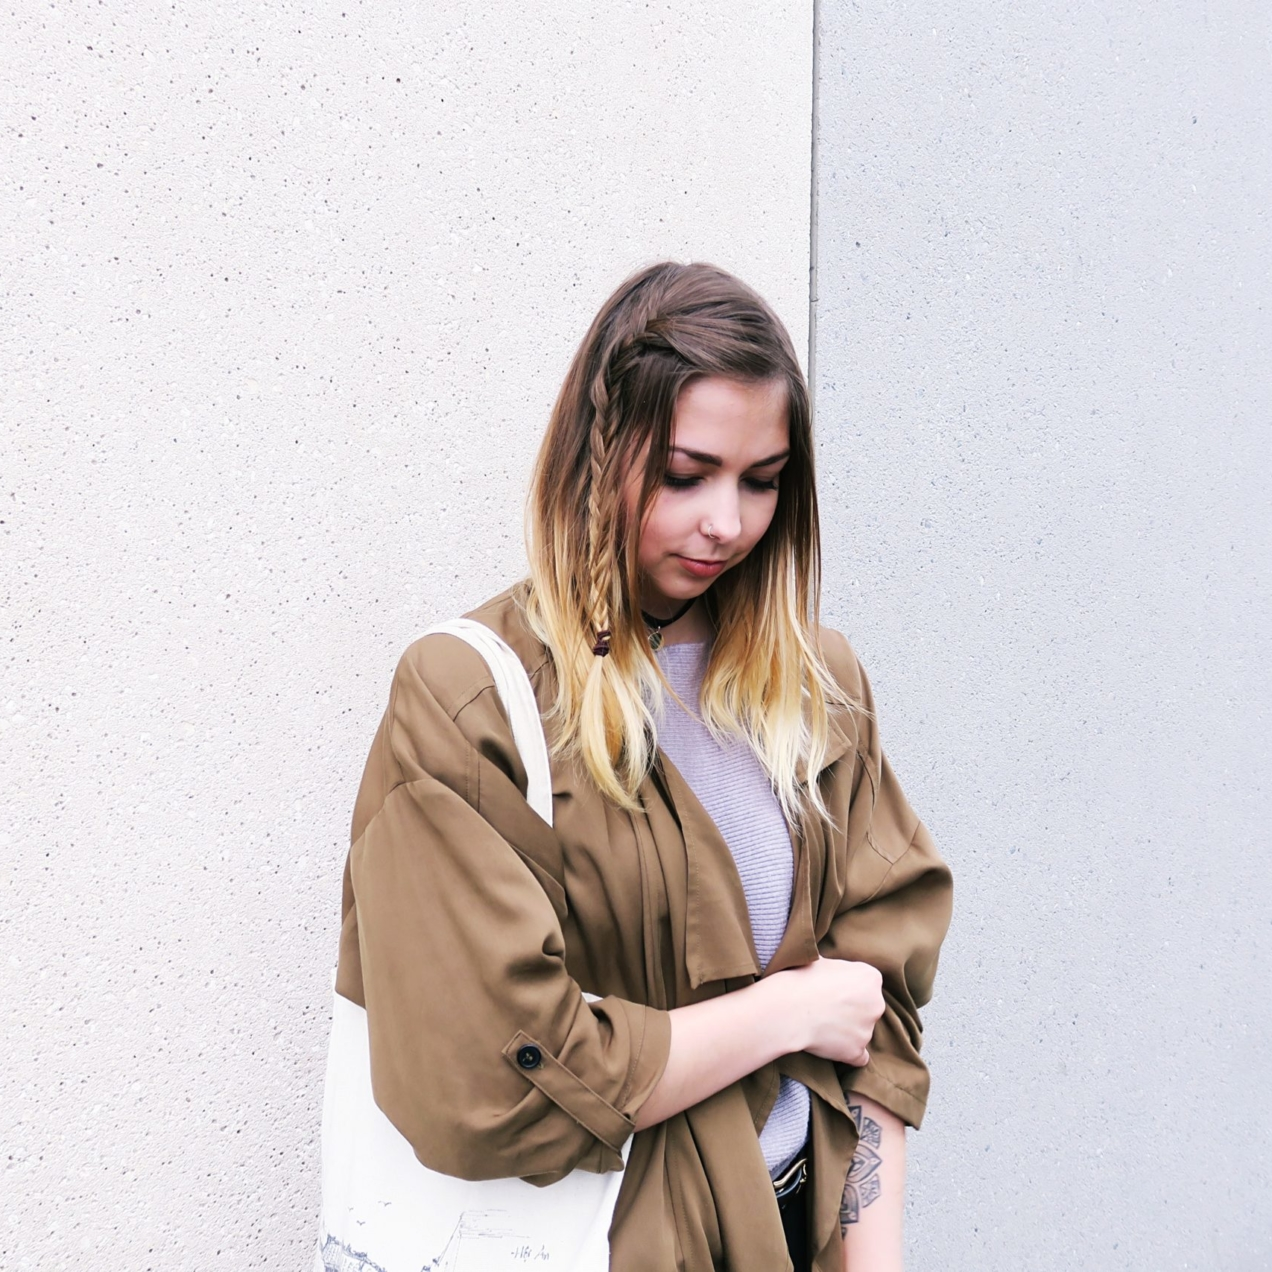 My Go-To Look: Edgy And Effortless